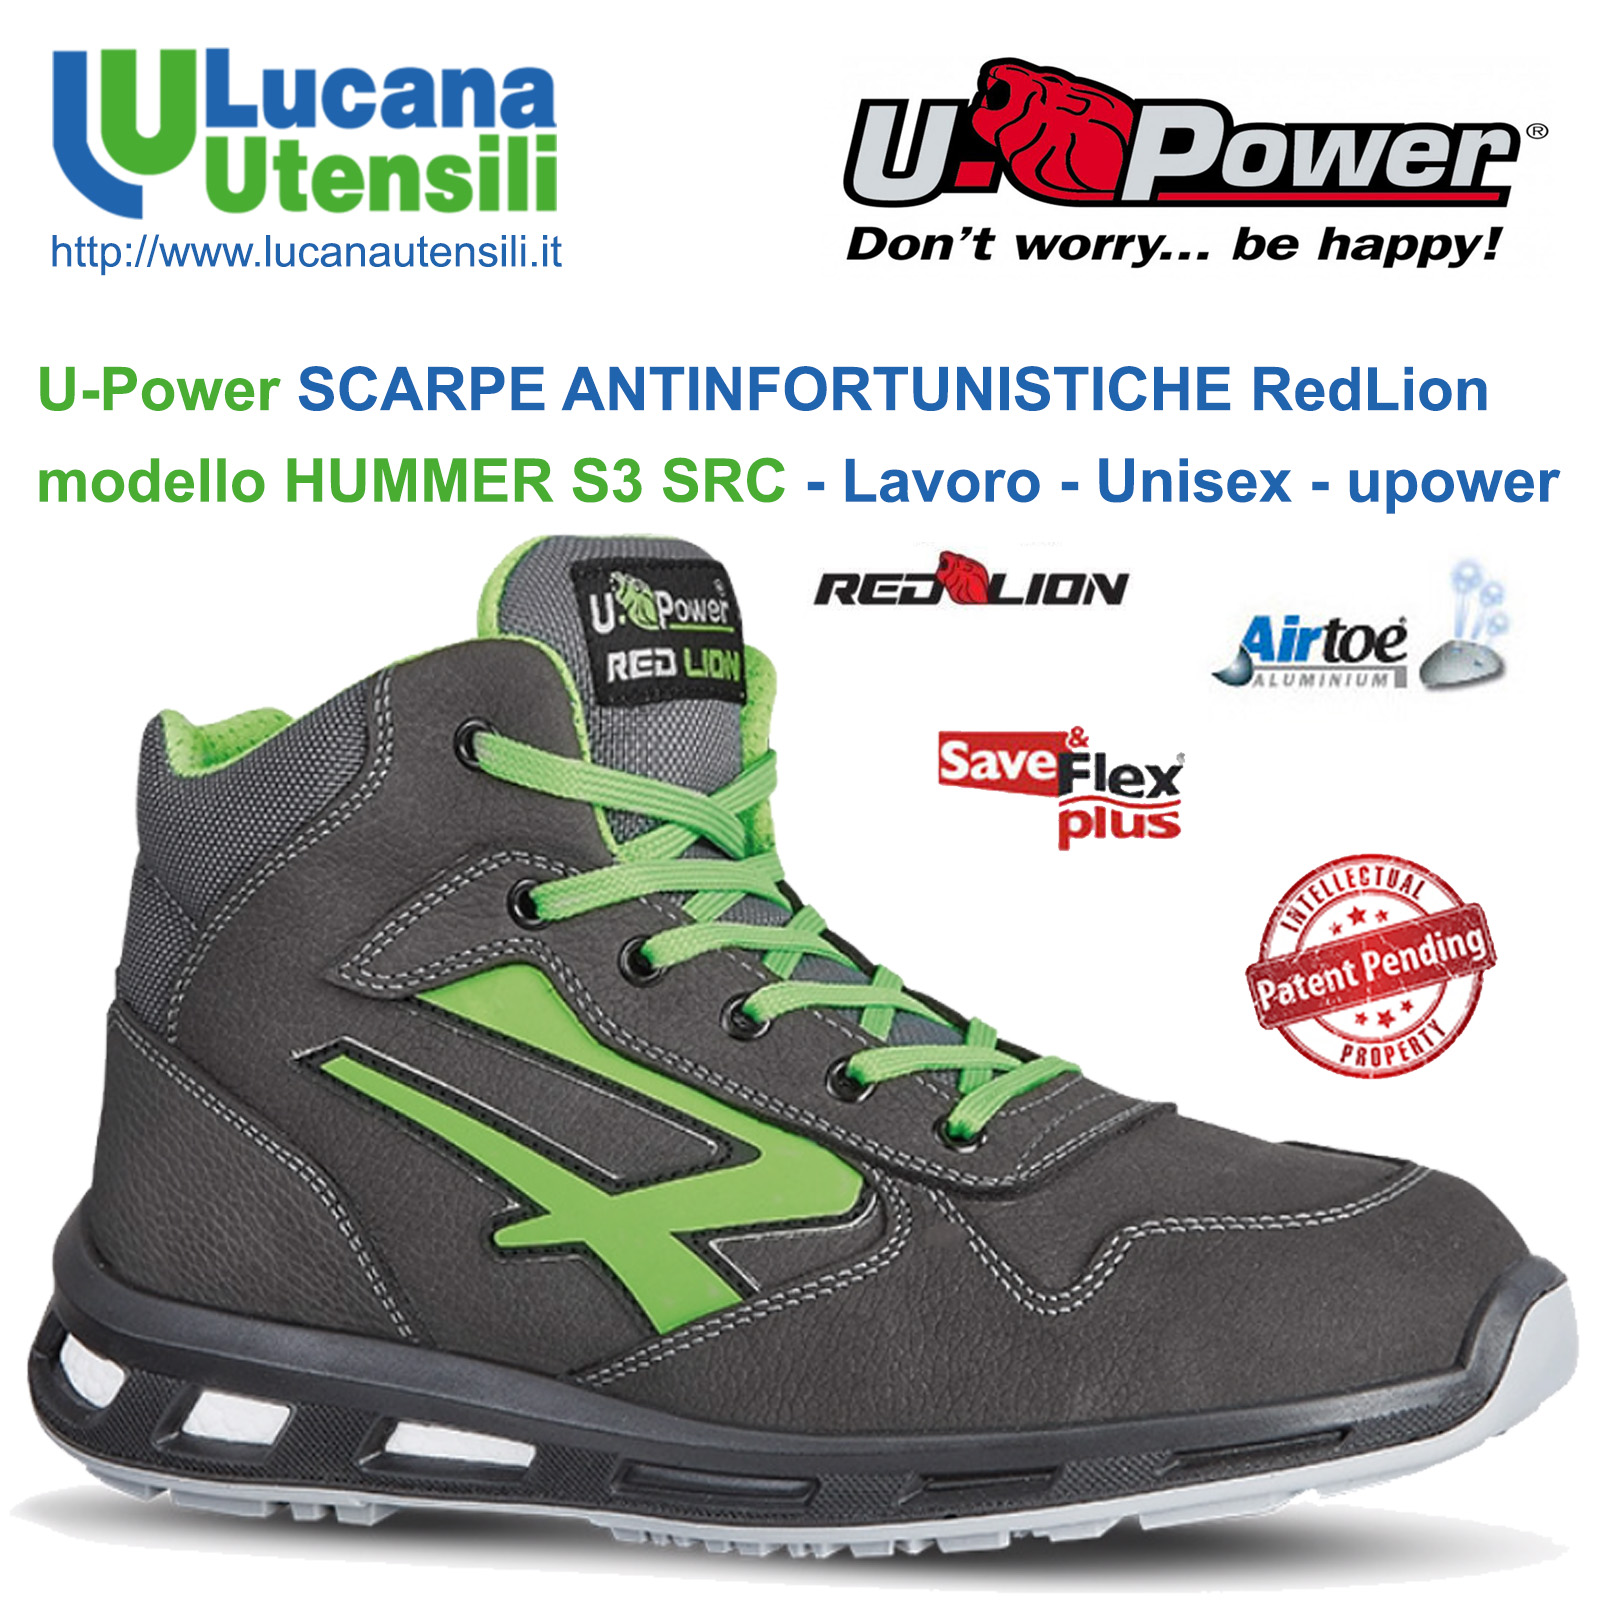 U POWER SCARPA ANTINFORTUNISTICA modello HUMMER S3 SRC